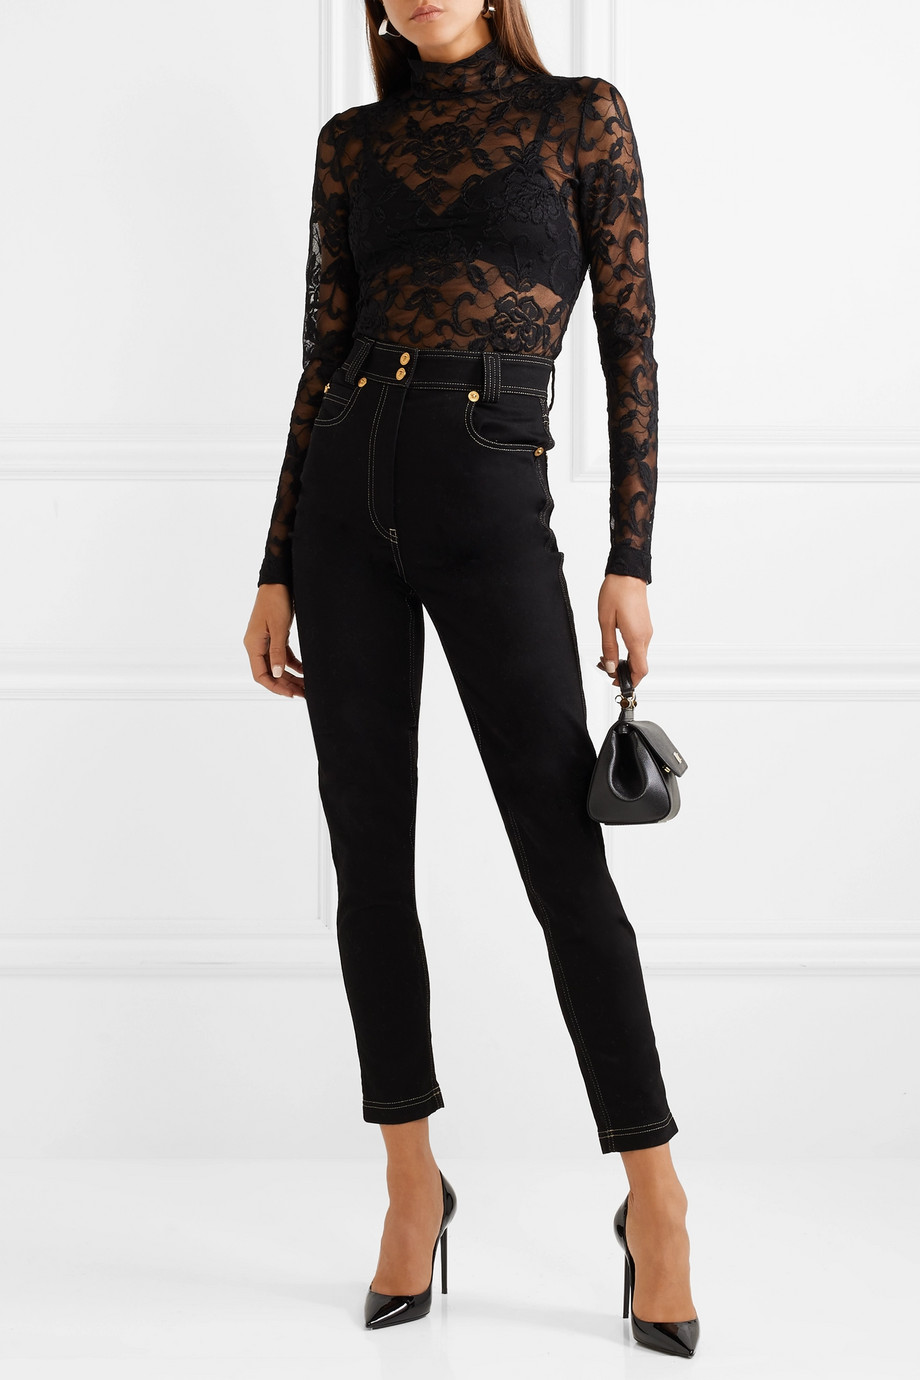 Long sleeved blouse Dolce & Gabbana buy Long sleeved blouse Dolce & Gabbana internet shop